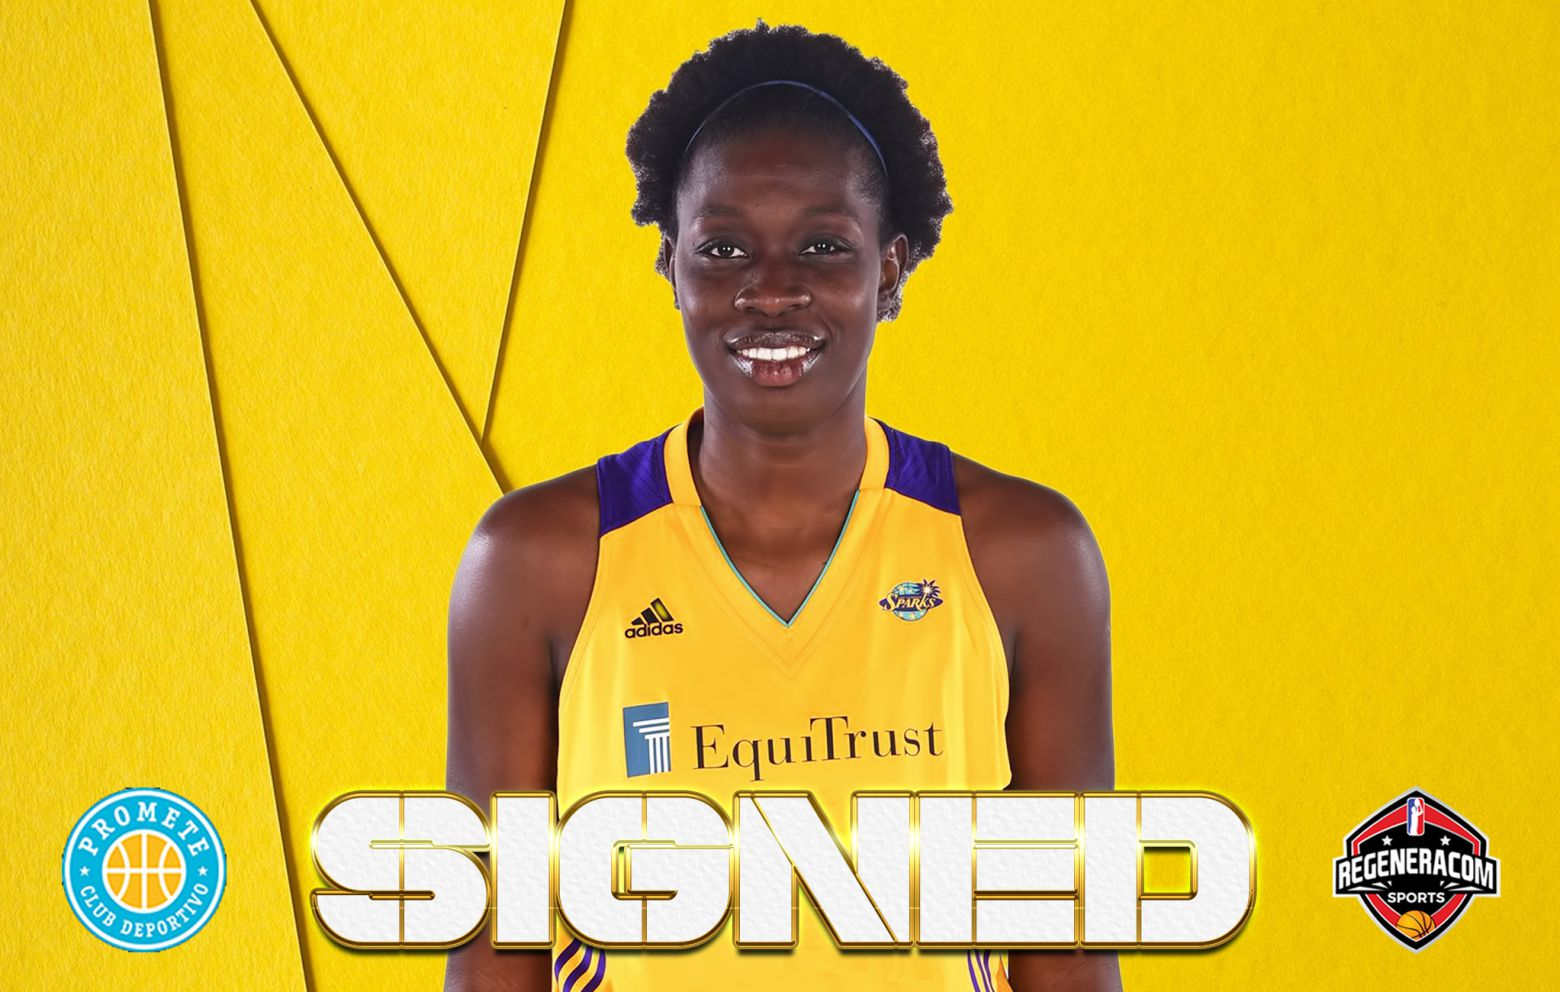 MAIMOUNA DIARRA has signed with Campus Promete for the 2021/22 season